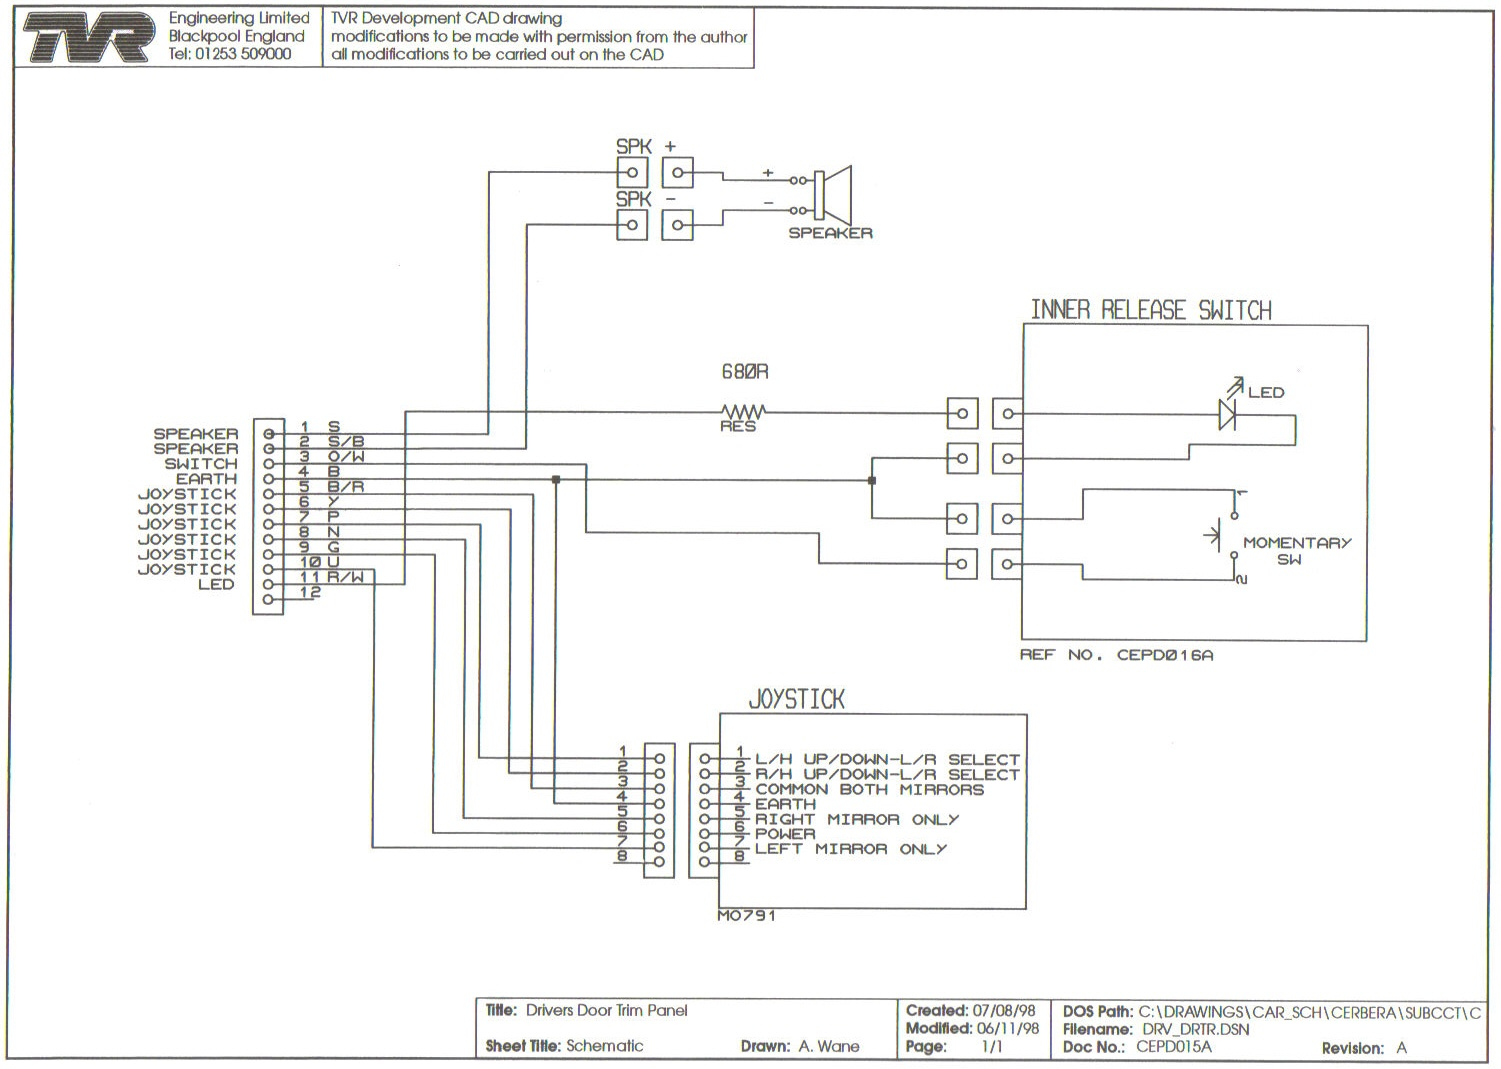 Groovy Wiring Diagram Skoda Fabia Ii New Model Wiring Diagram Wiring Cloud Usnesfoxcilixyz